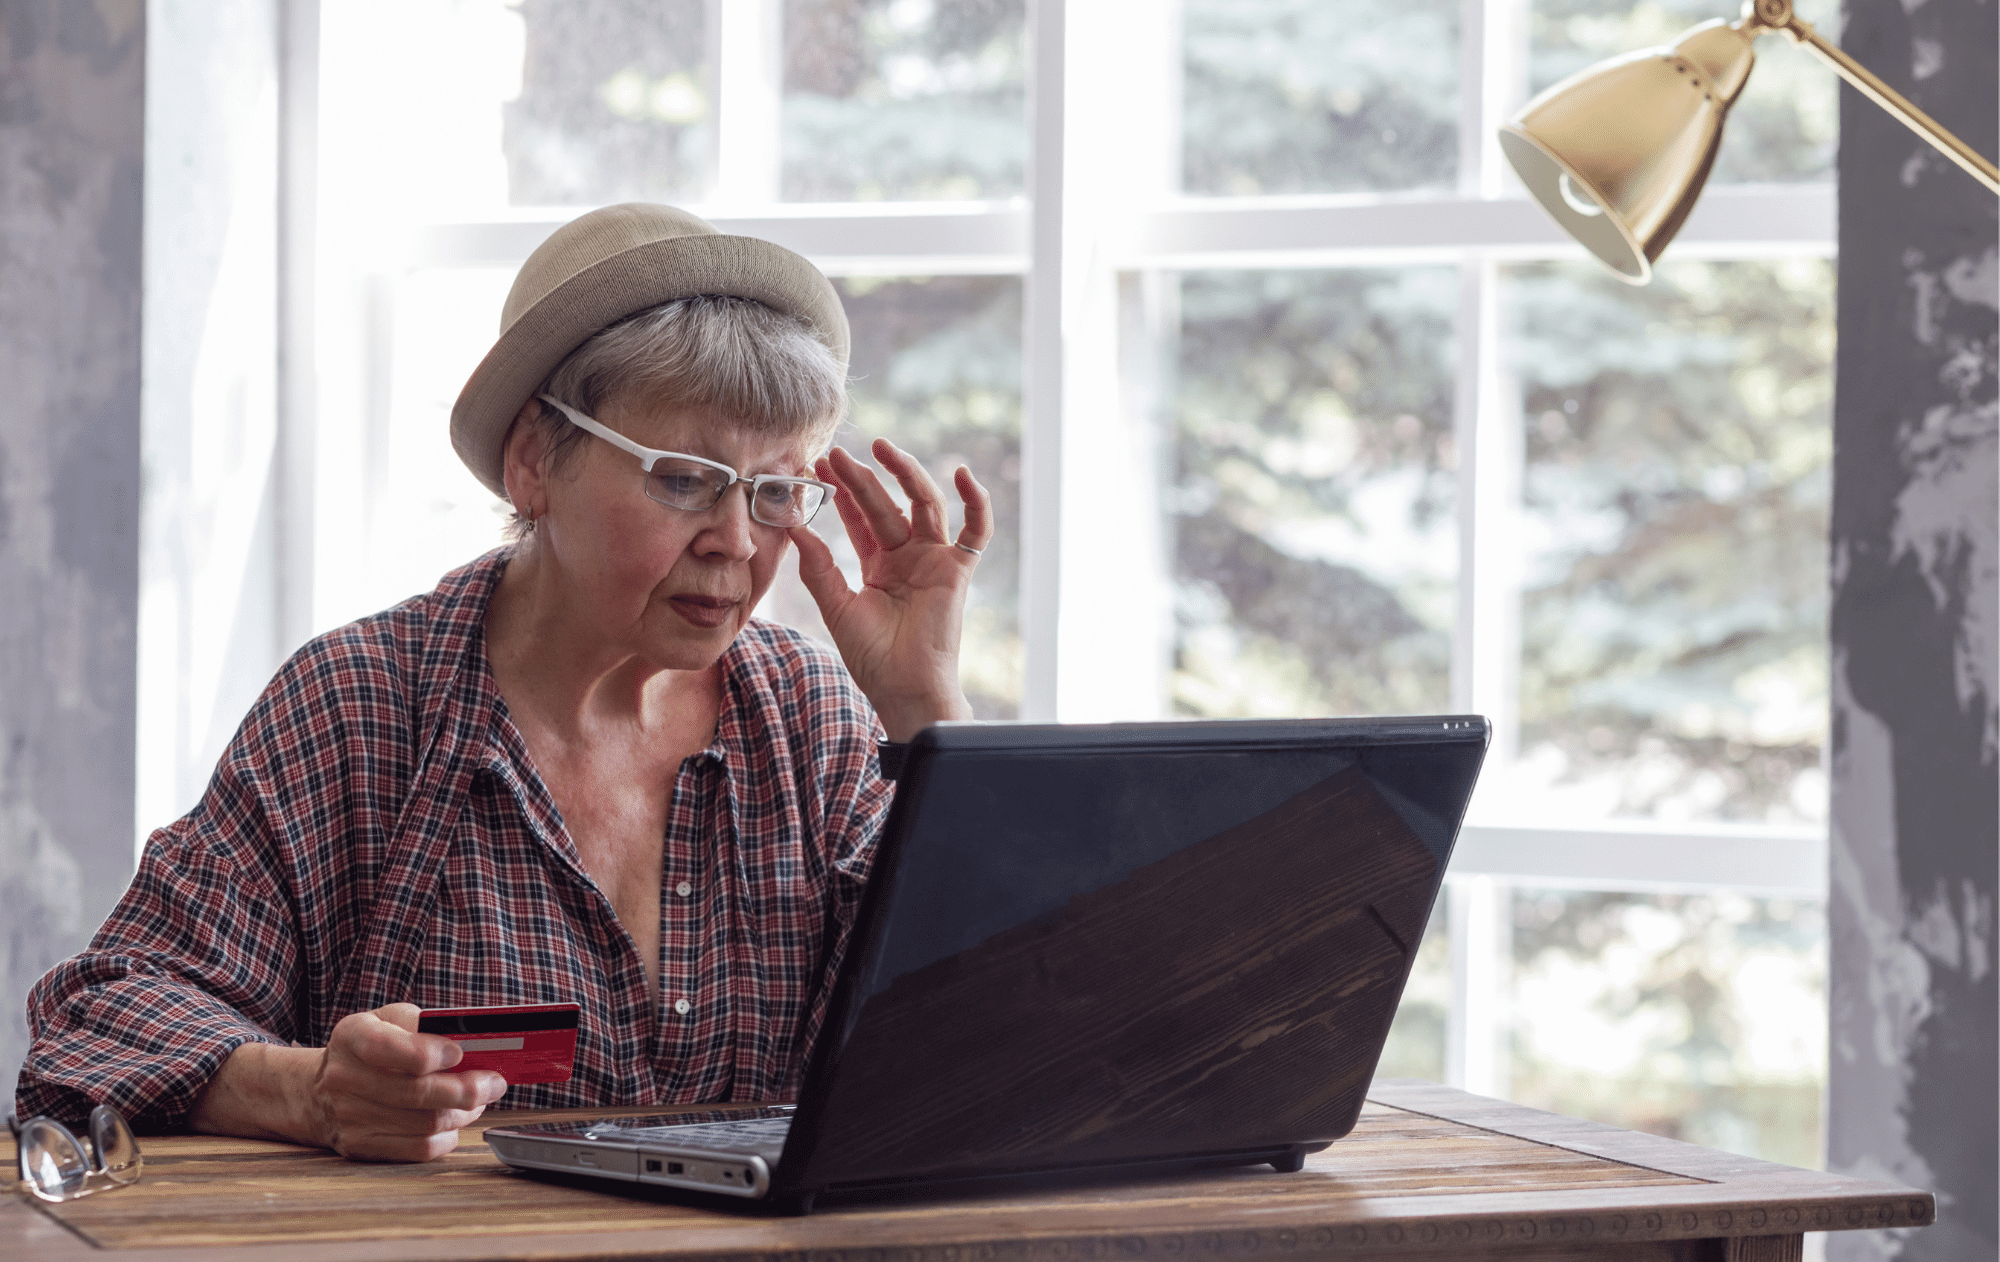 An older person wearing a cute hat in an oversized flannel shirt is sitting at a table with a laptop holding a credit card on a bright day. They are adjusting their glasses with the other hand while looking intently at the screen.